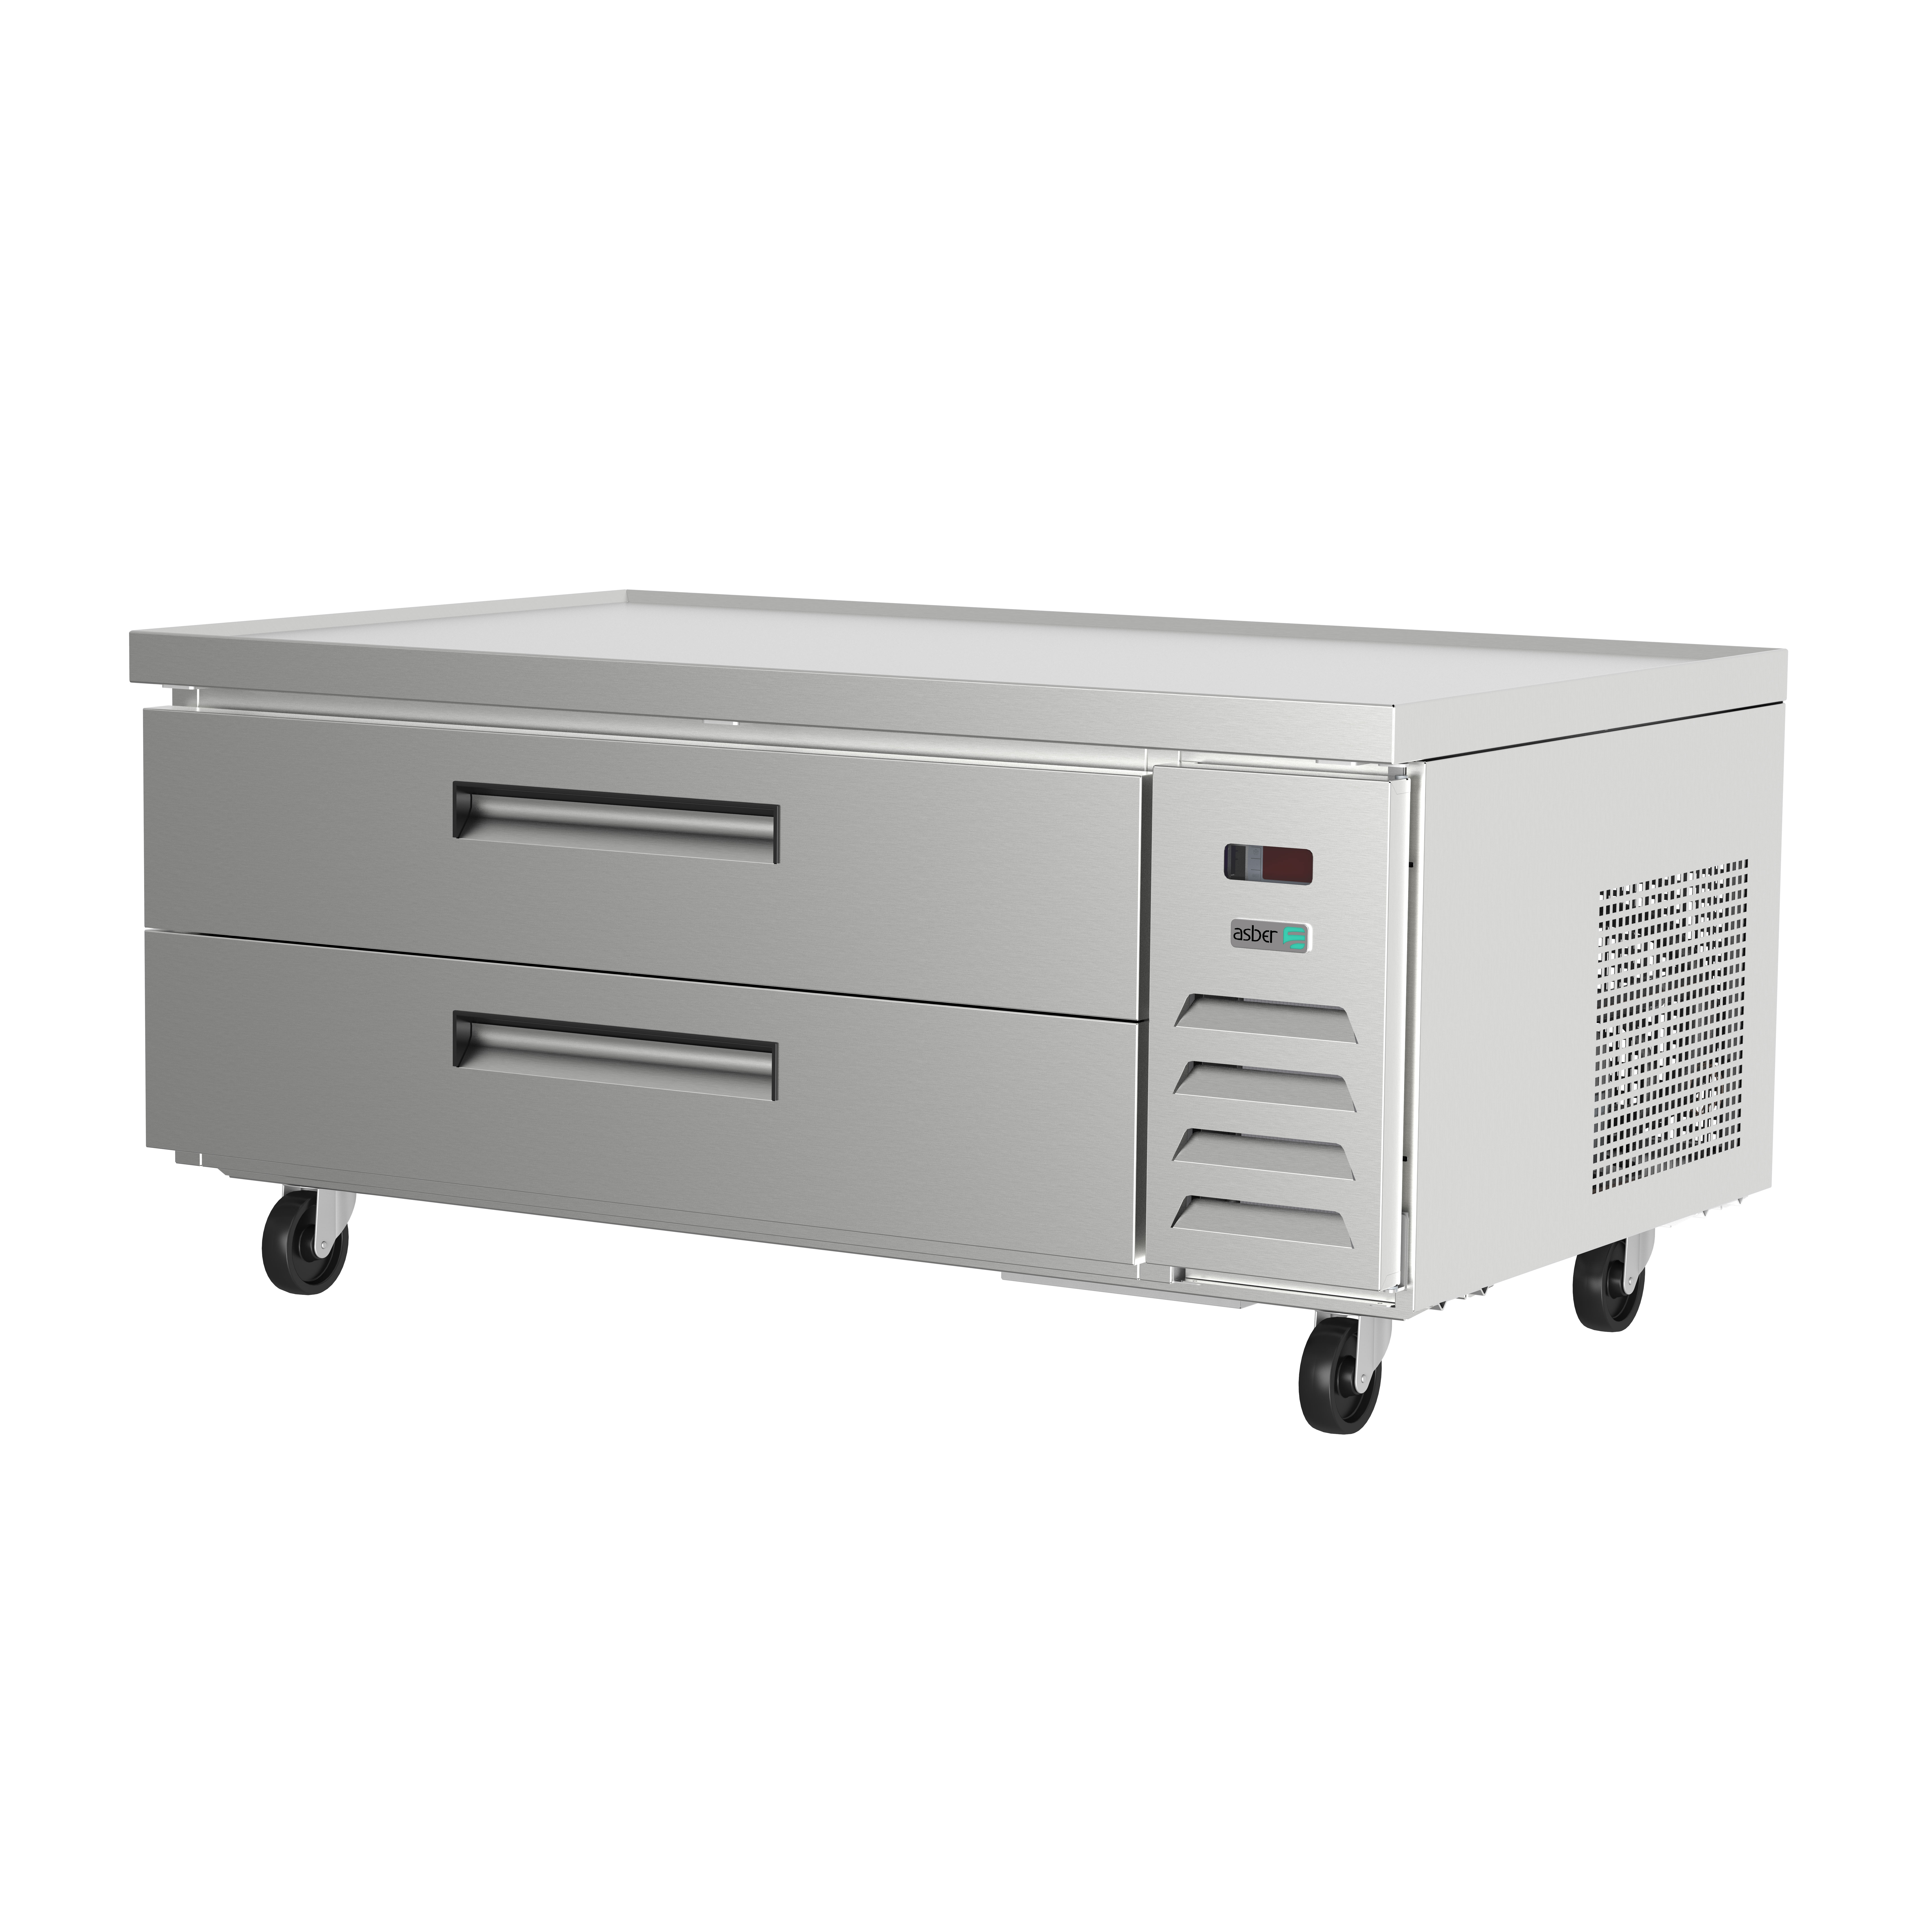 Asber ACBR-52 equipment stand, refrigerated base